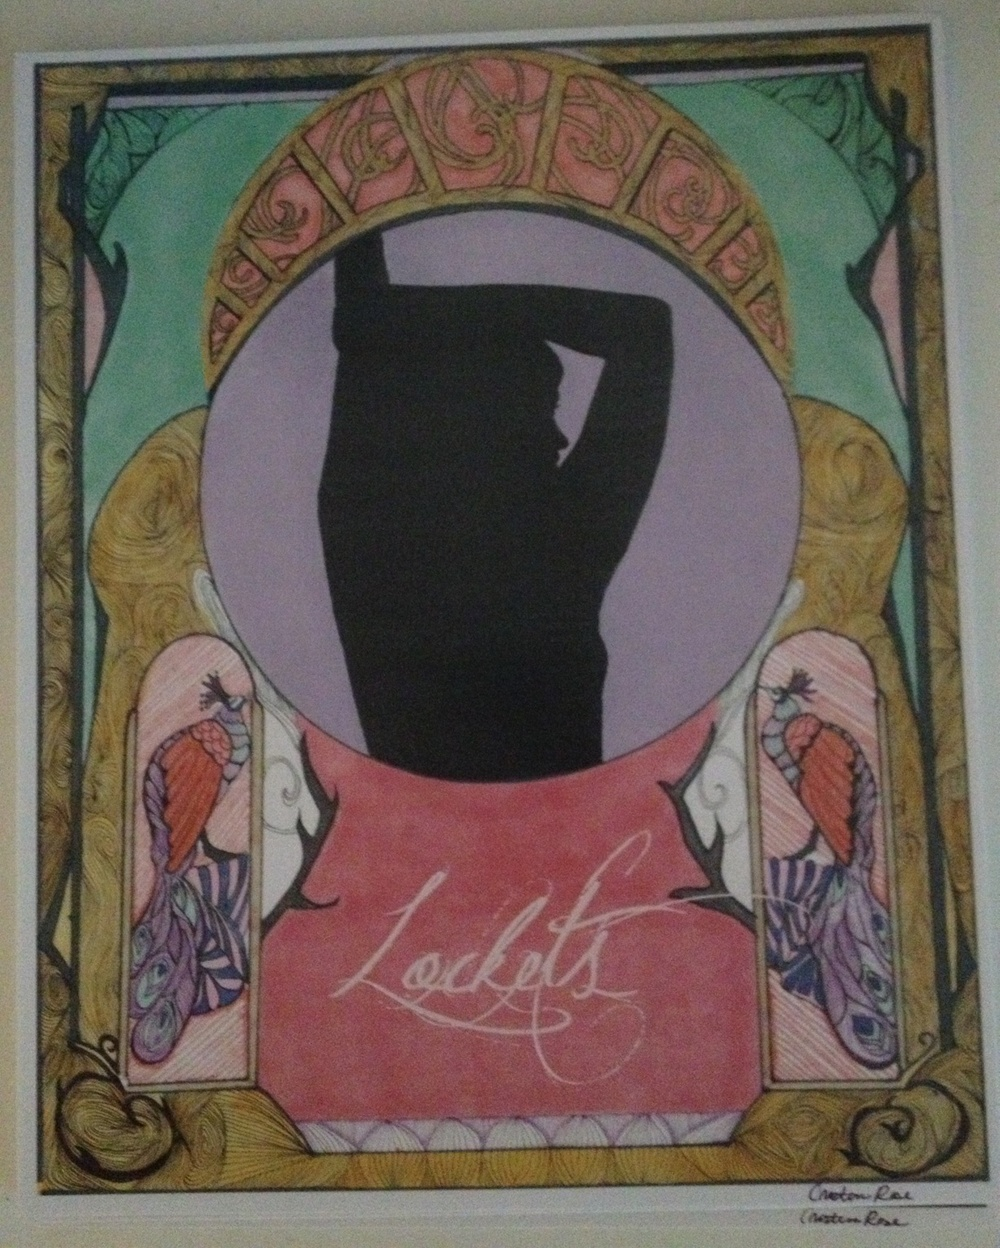 Lockets - Surrender Poster Print by Cristina Rose.